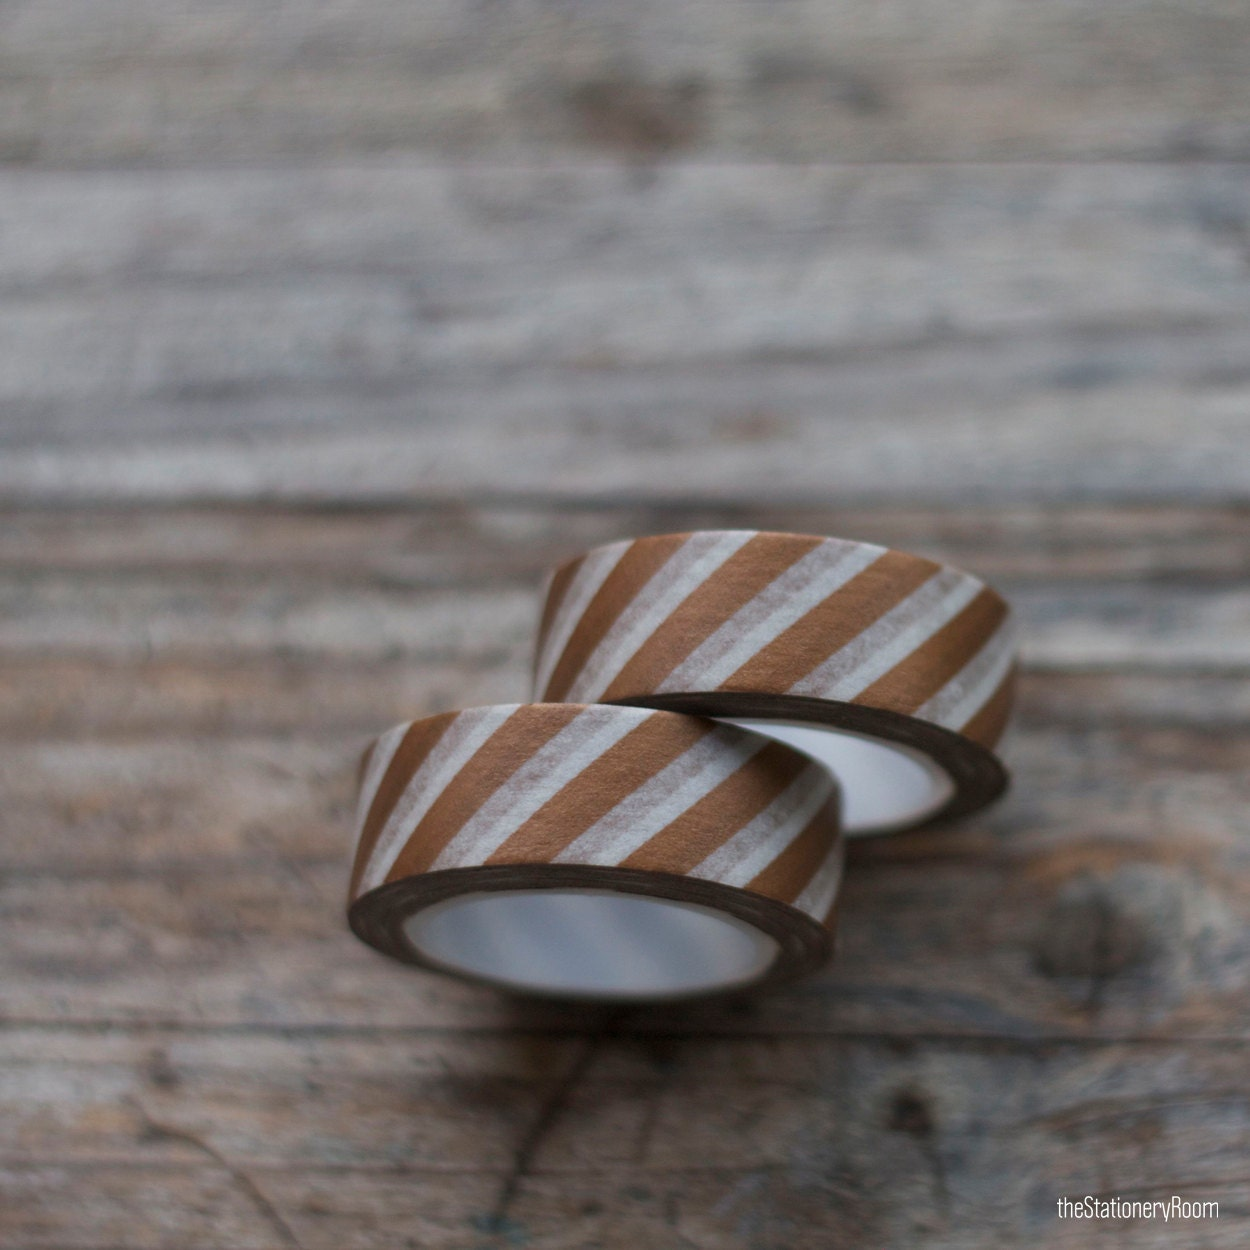 Japanese Washi Tape - Masking Tape roll in Chocolate Brown and White Stripes - theStationeryRoom